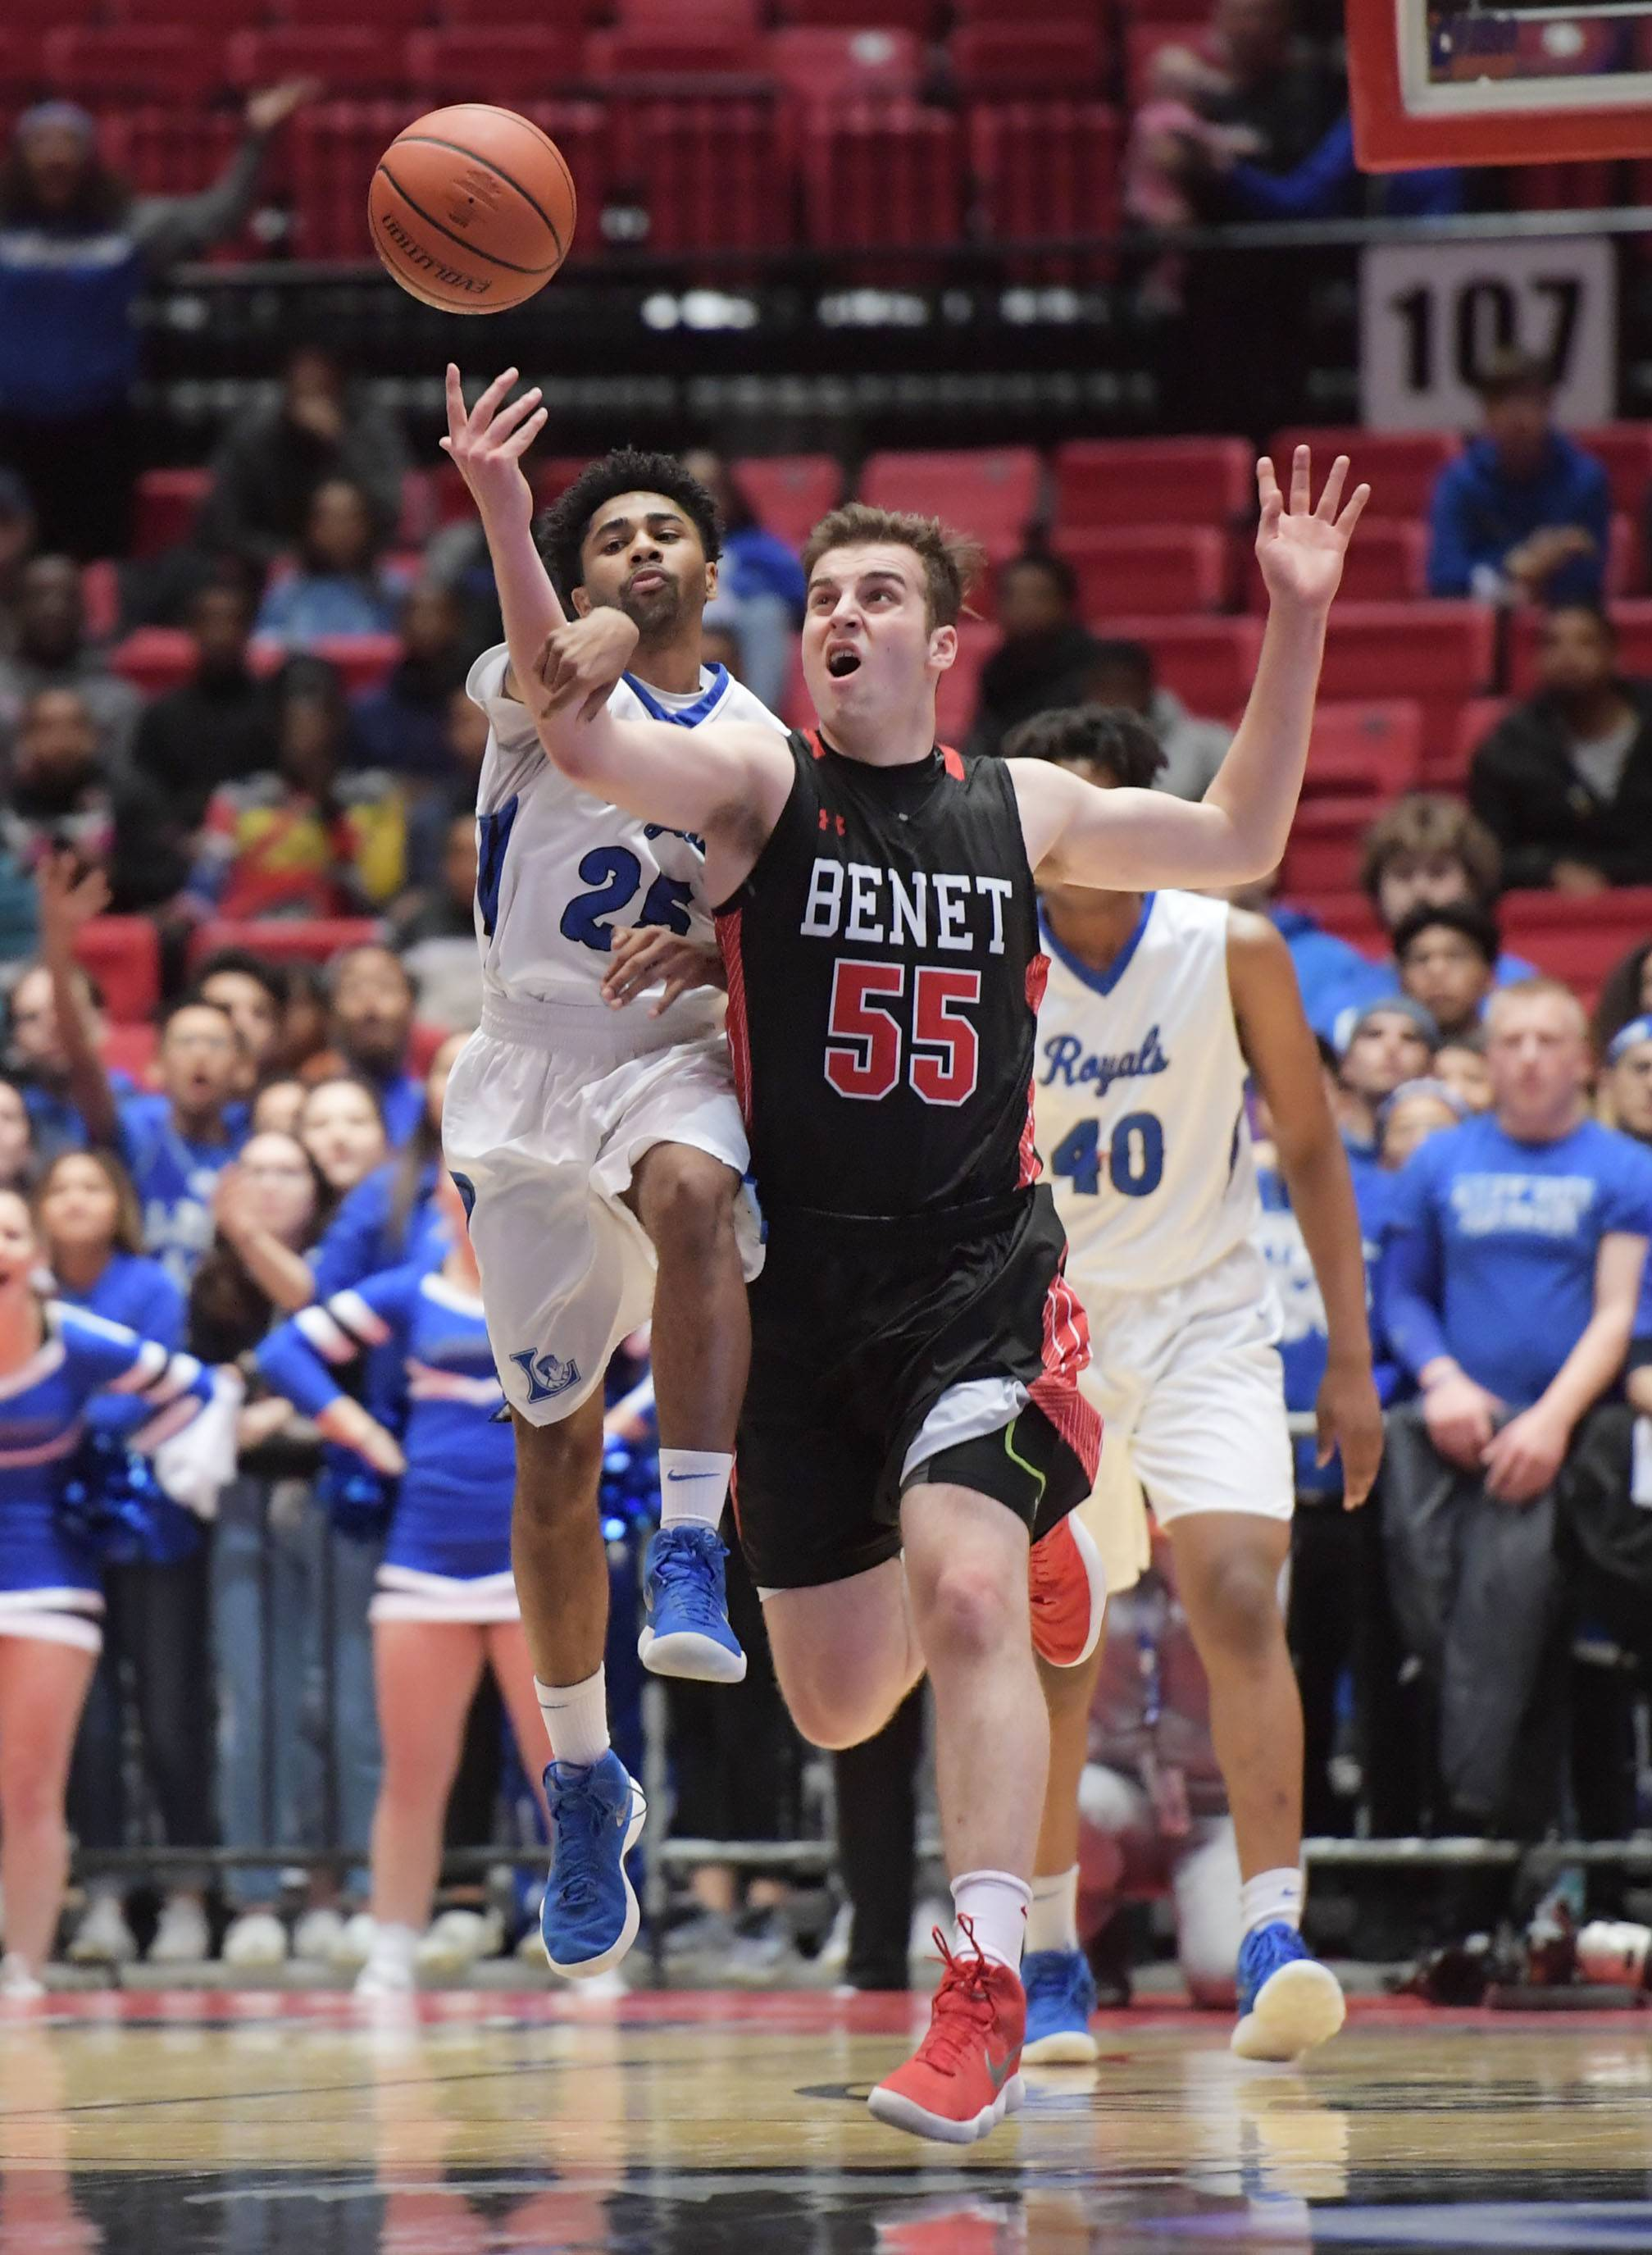 Larkin's Christopher Rose and Benet's Colin Crothers battle for the ball in the Class 4A supersectional boys basketball game at Northern Illinois University Tuesday.and we